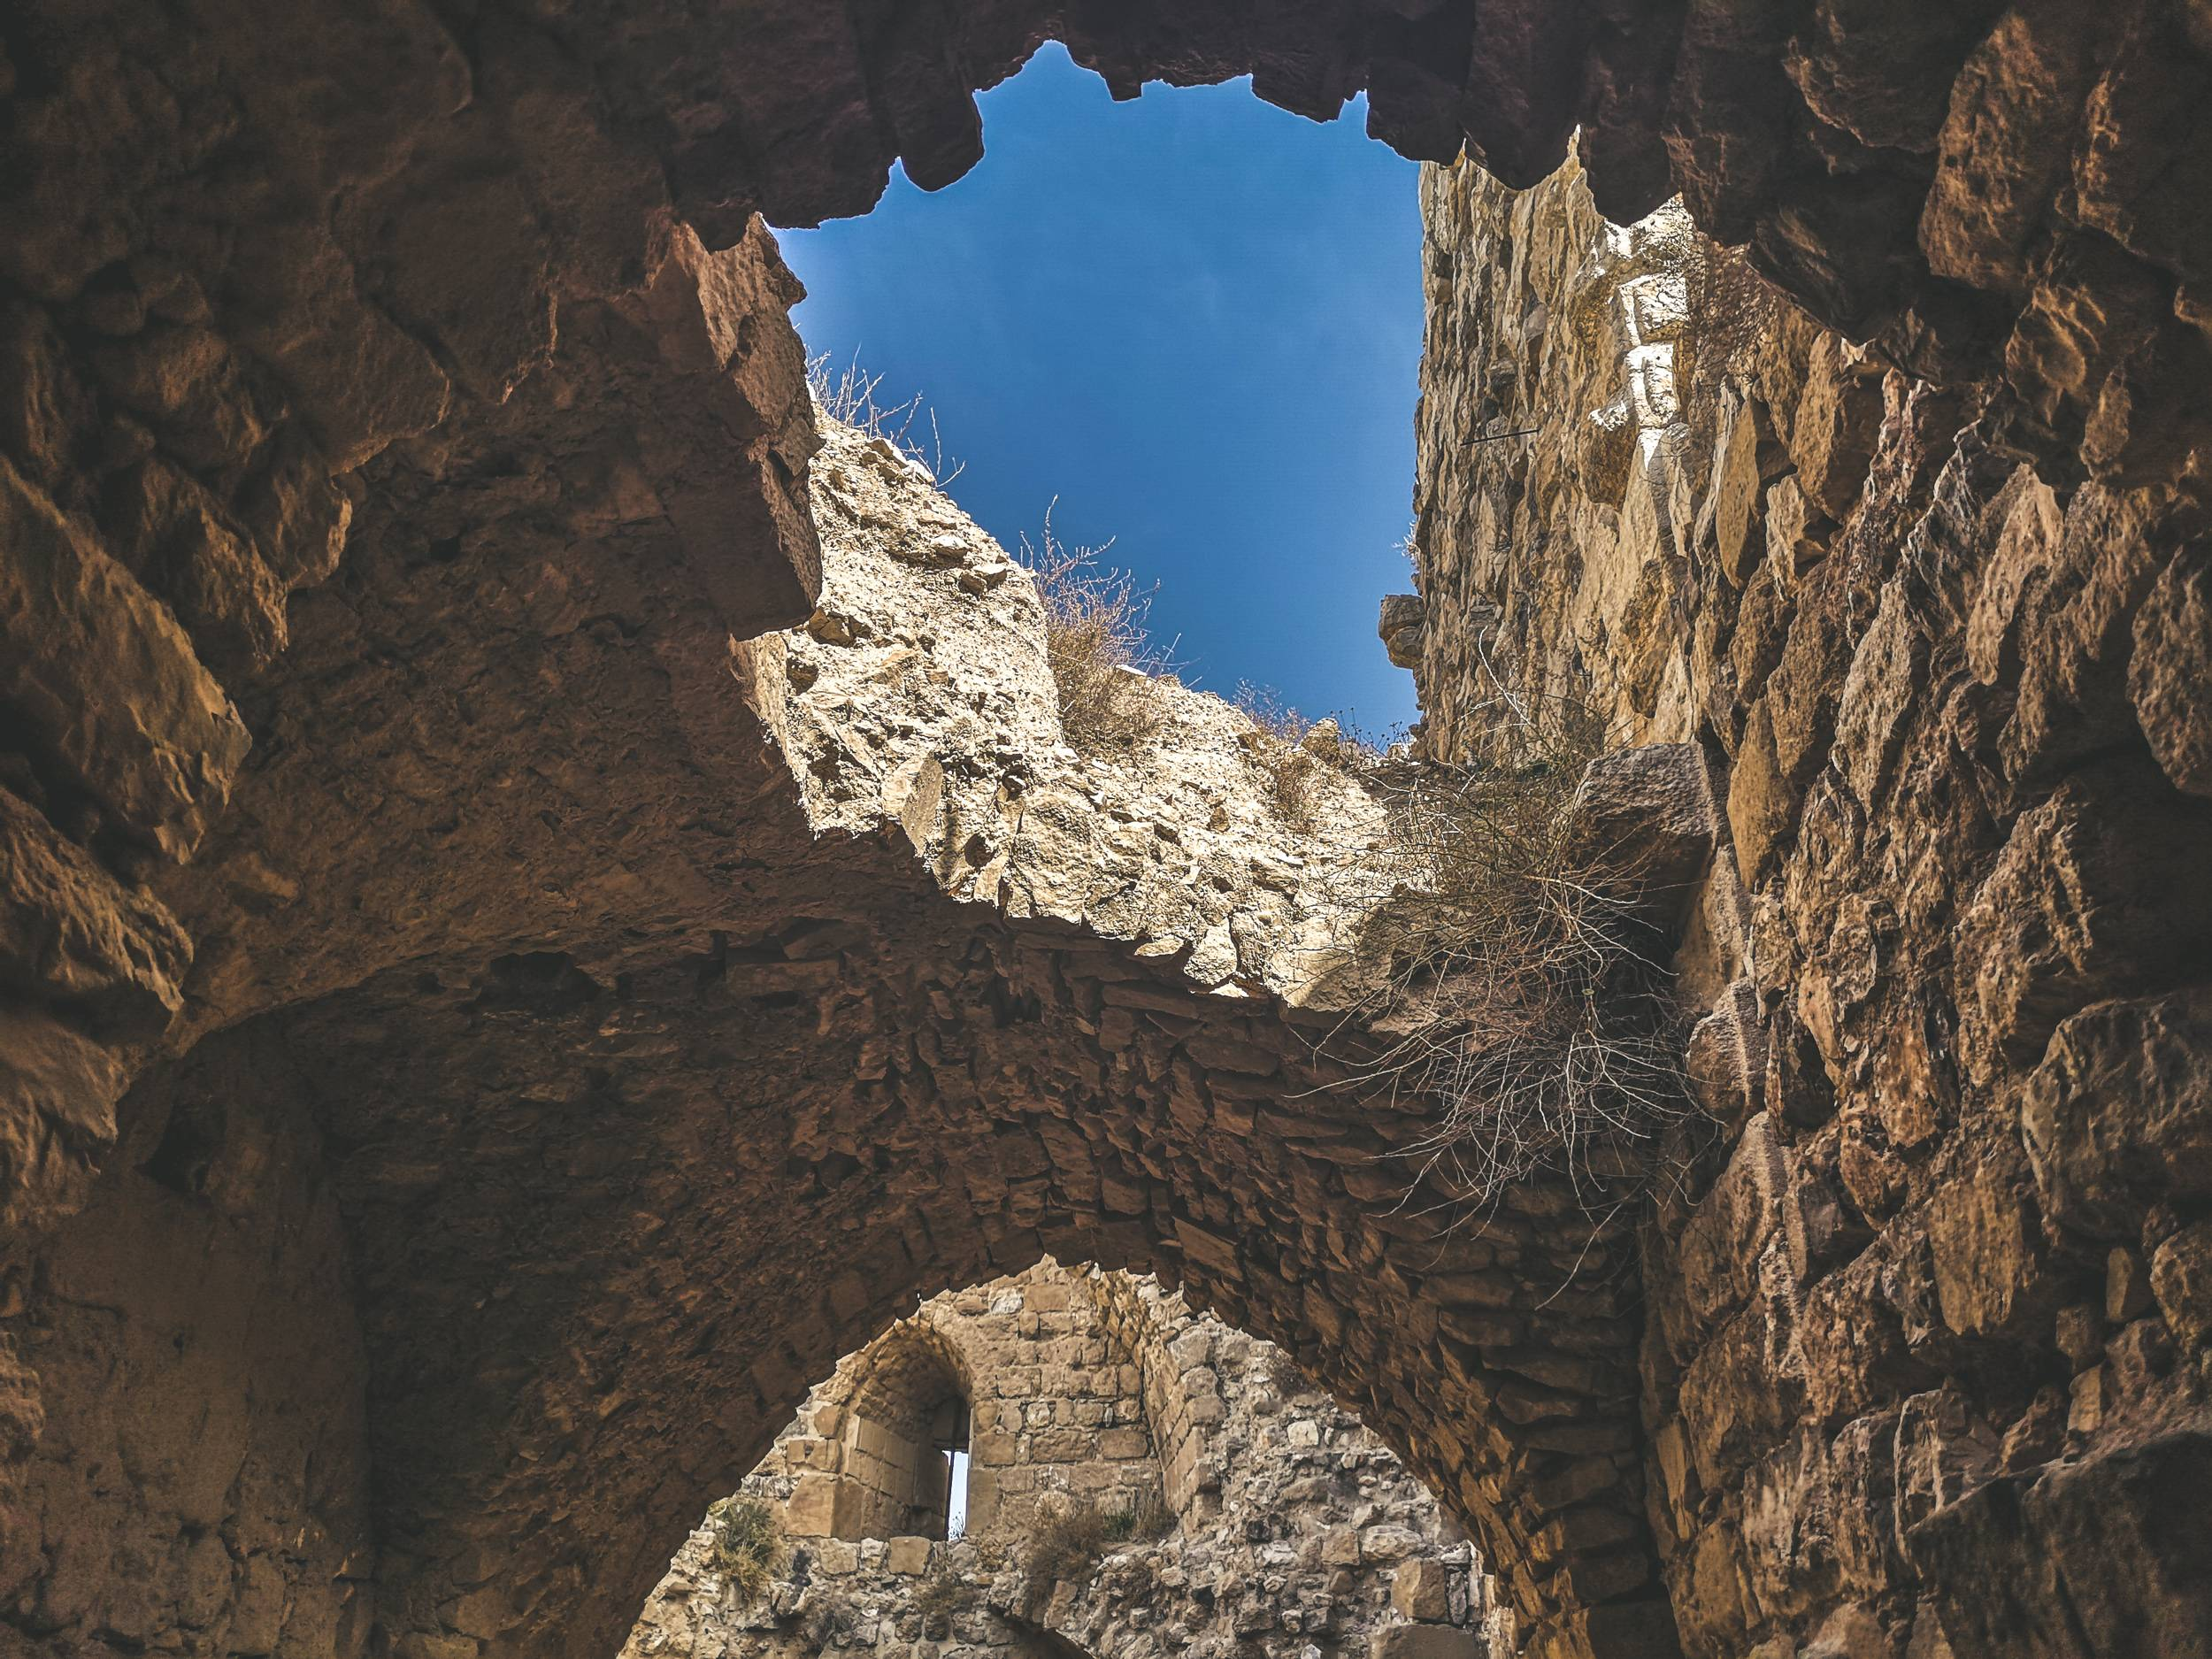 Al-Karak castle is one of the best examples of crusader castles wher eyou can see a mix of west European, Arab & Byzantine influence. Photo by Alis Monte [CC BY-SA 4.0], via Connecting the Dots